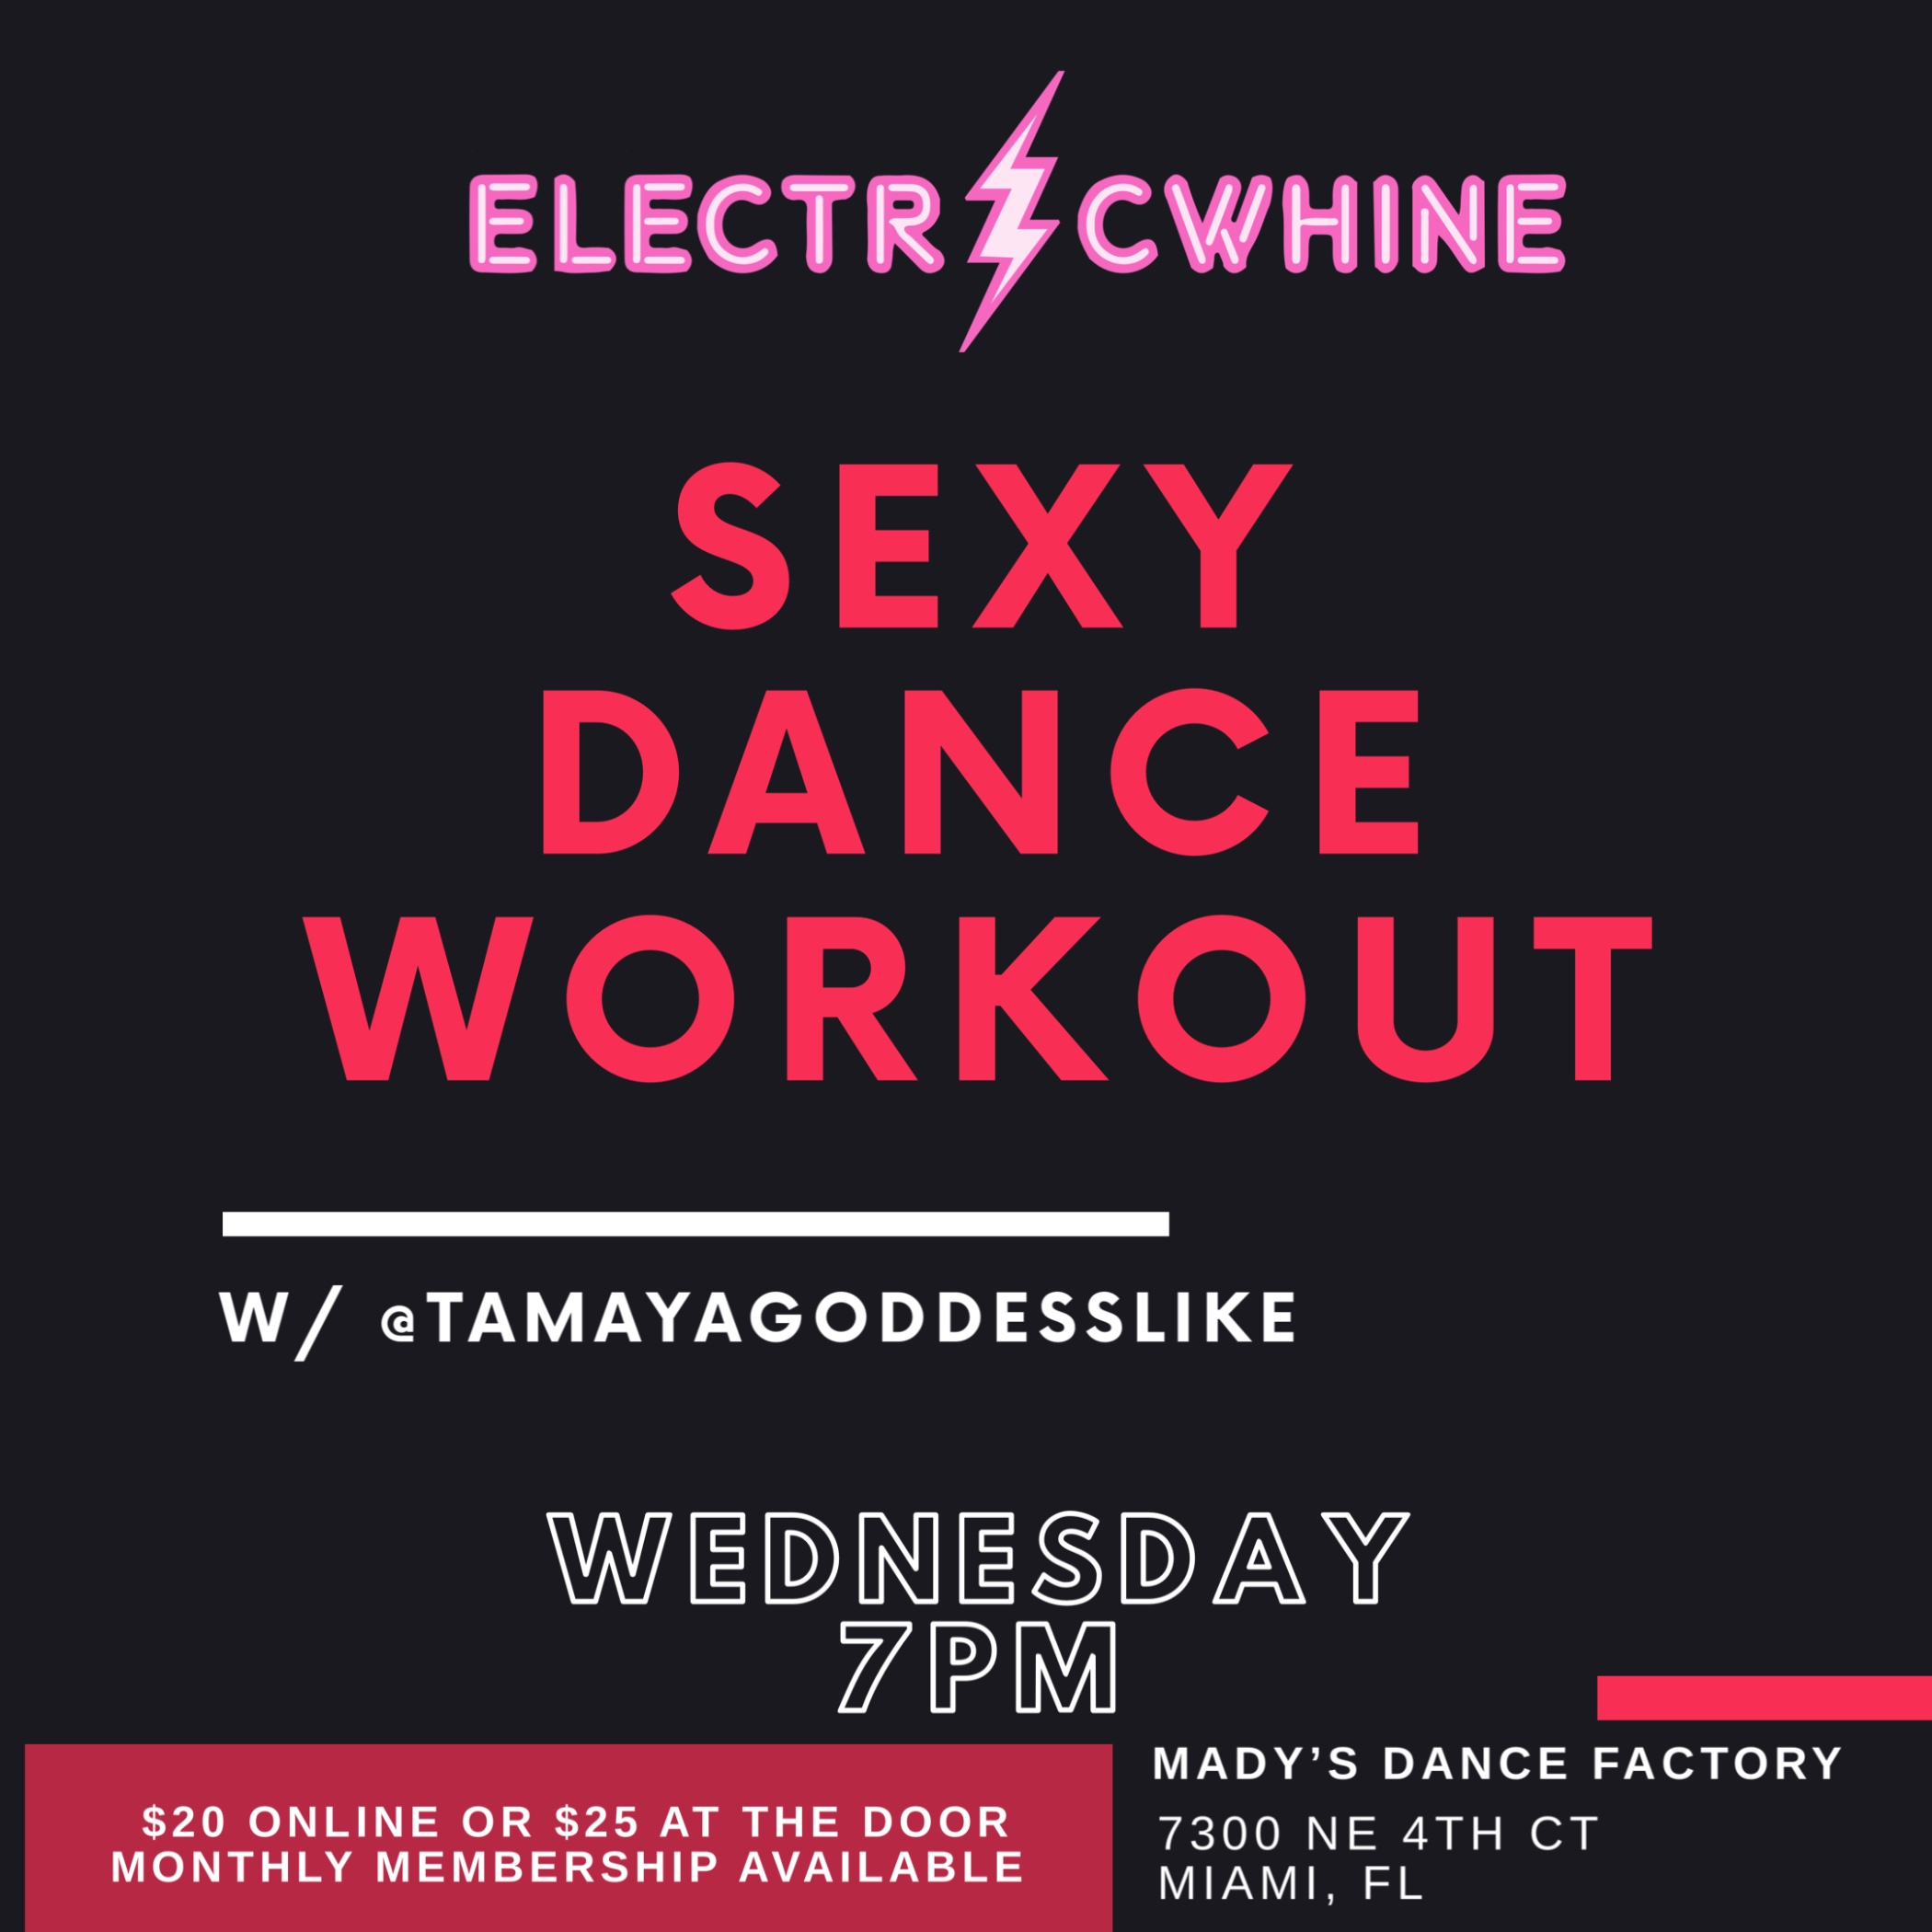 ELECTRICWHINE SEXY DANCE WORKOUT